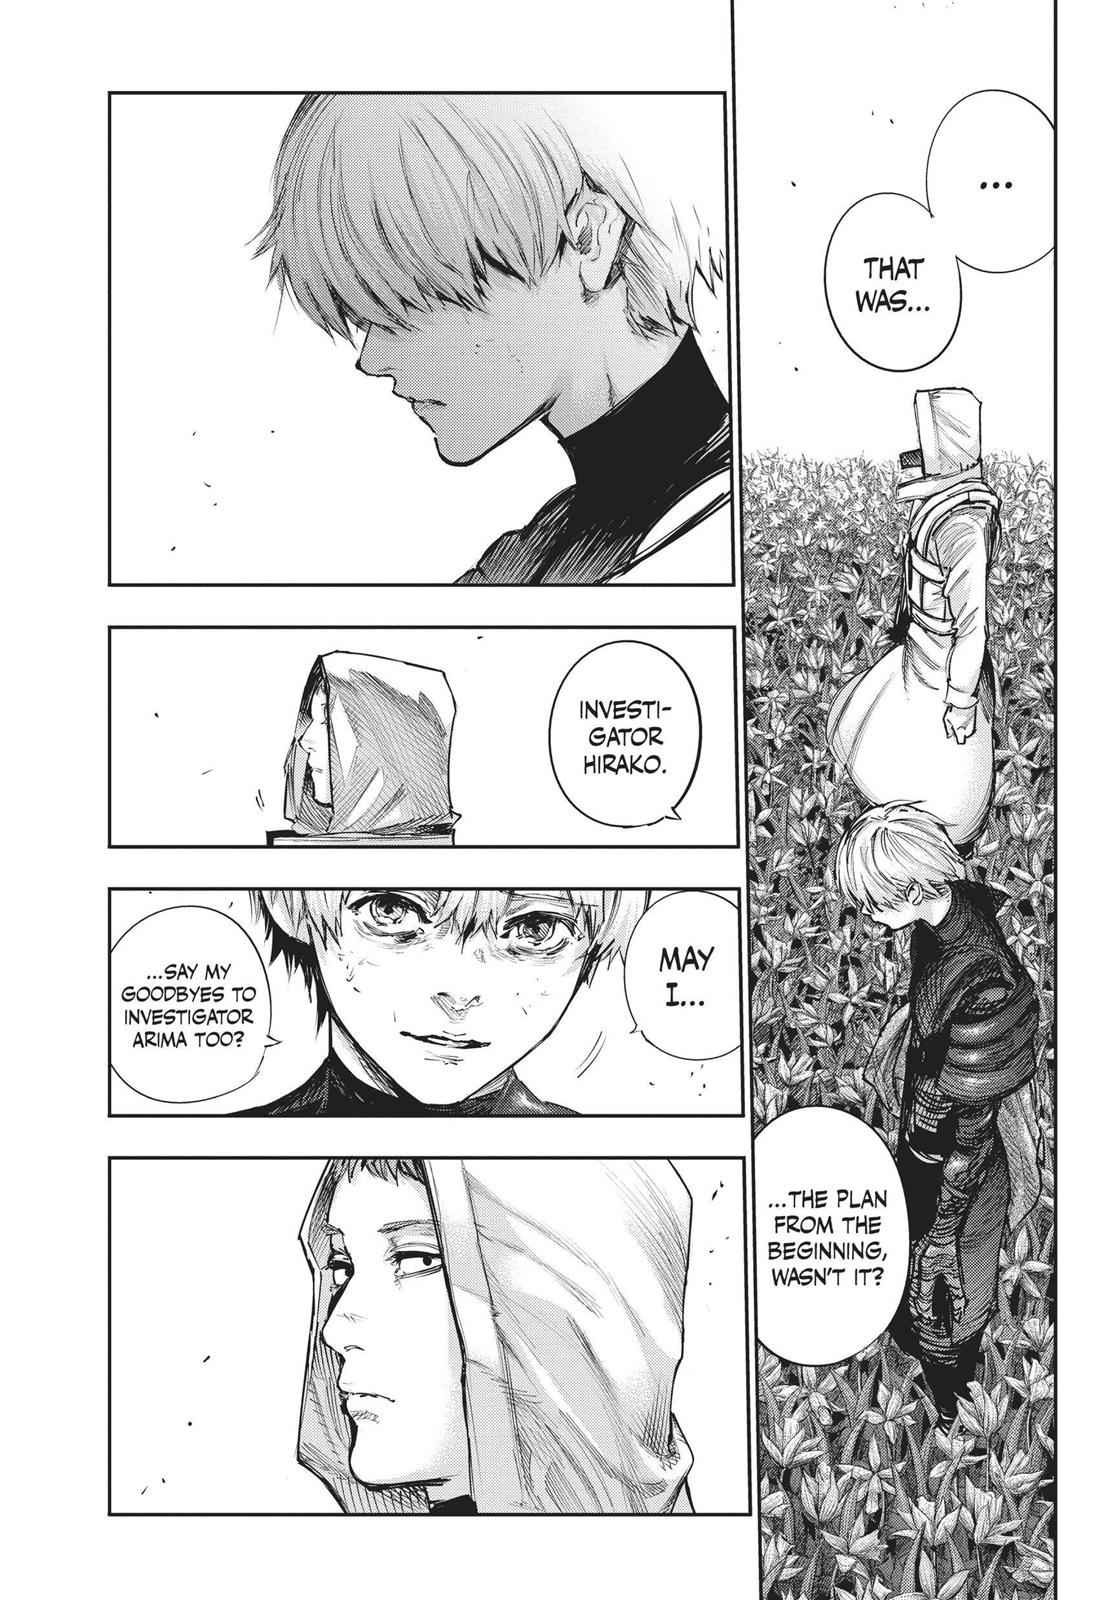 Tokyo Ghoul:re Chapter 85 Page 11